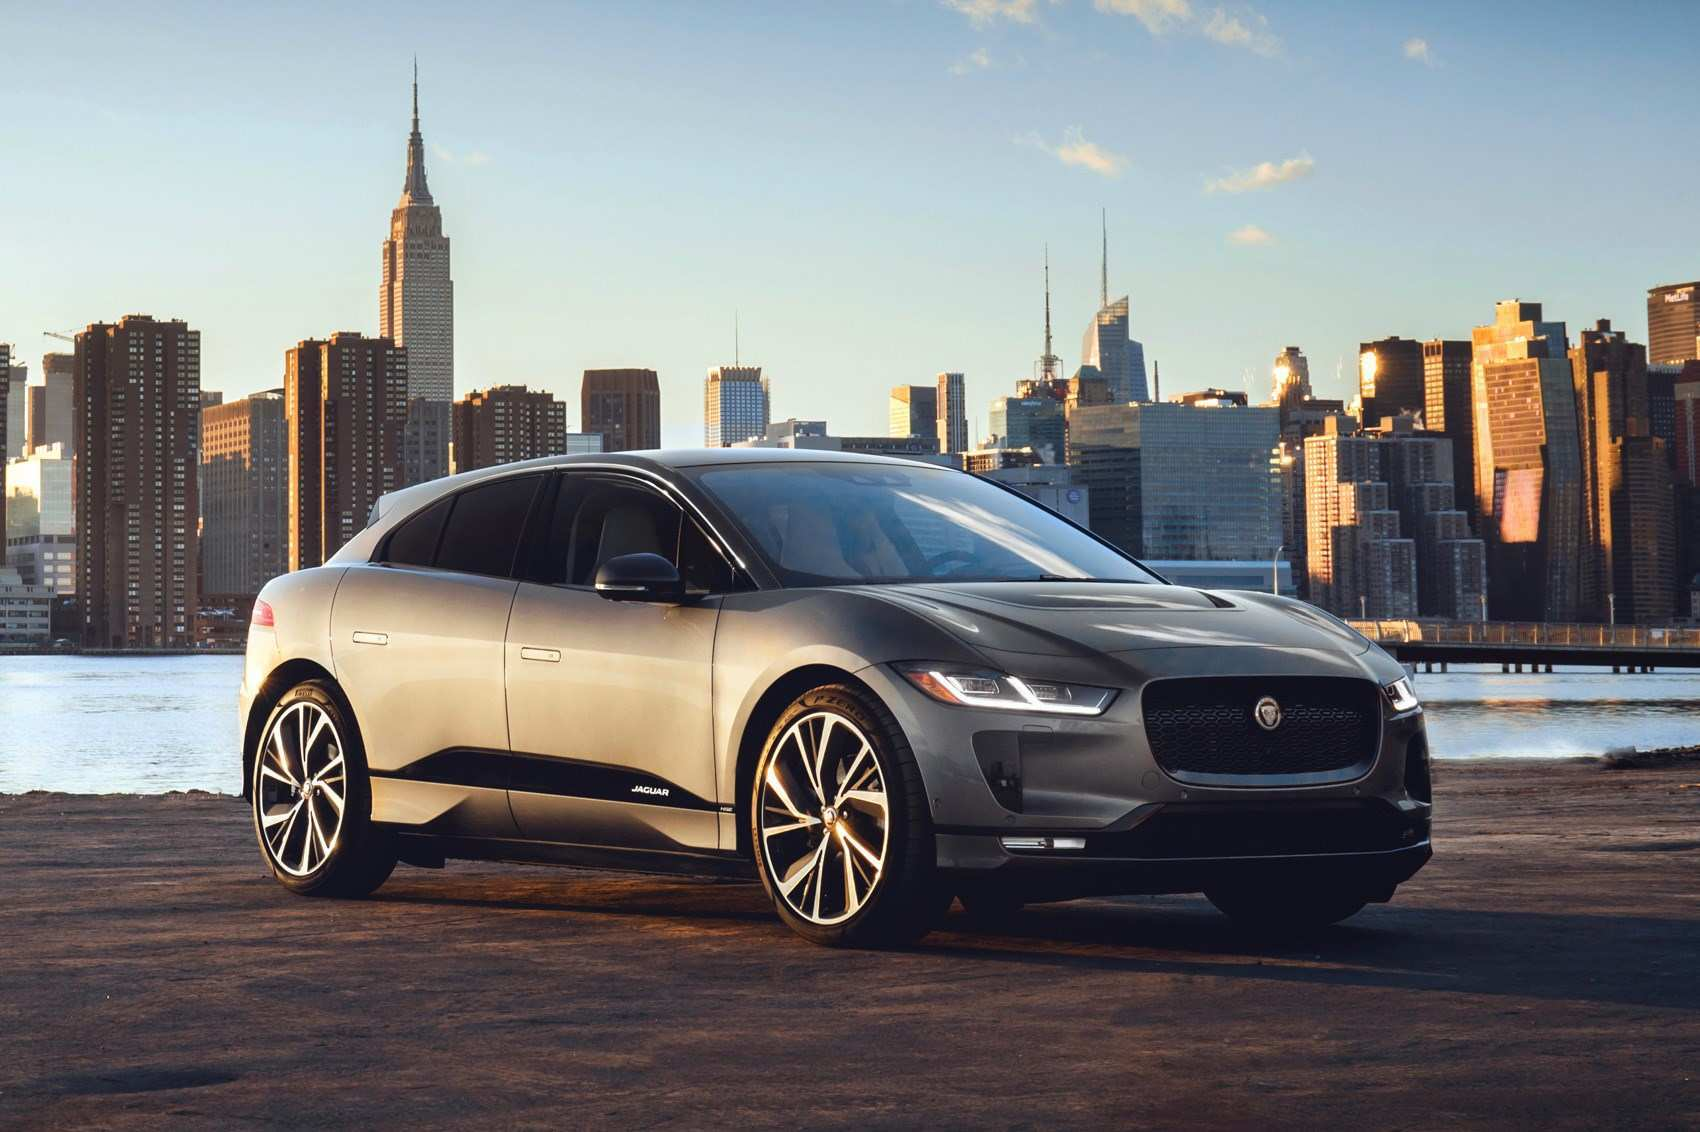 24 New 2019 Jaguar I Pace Price Images